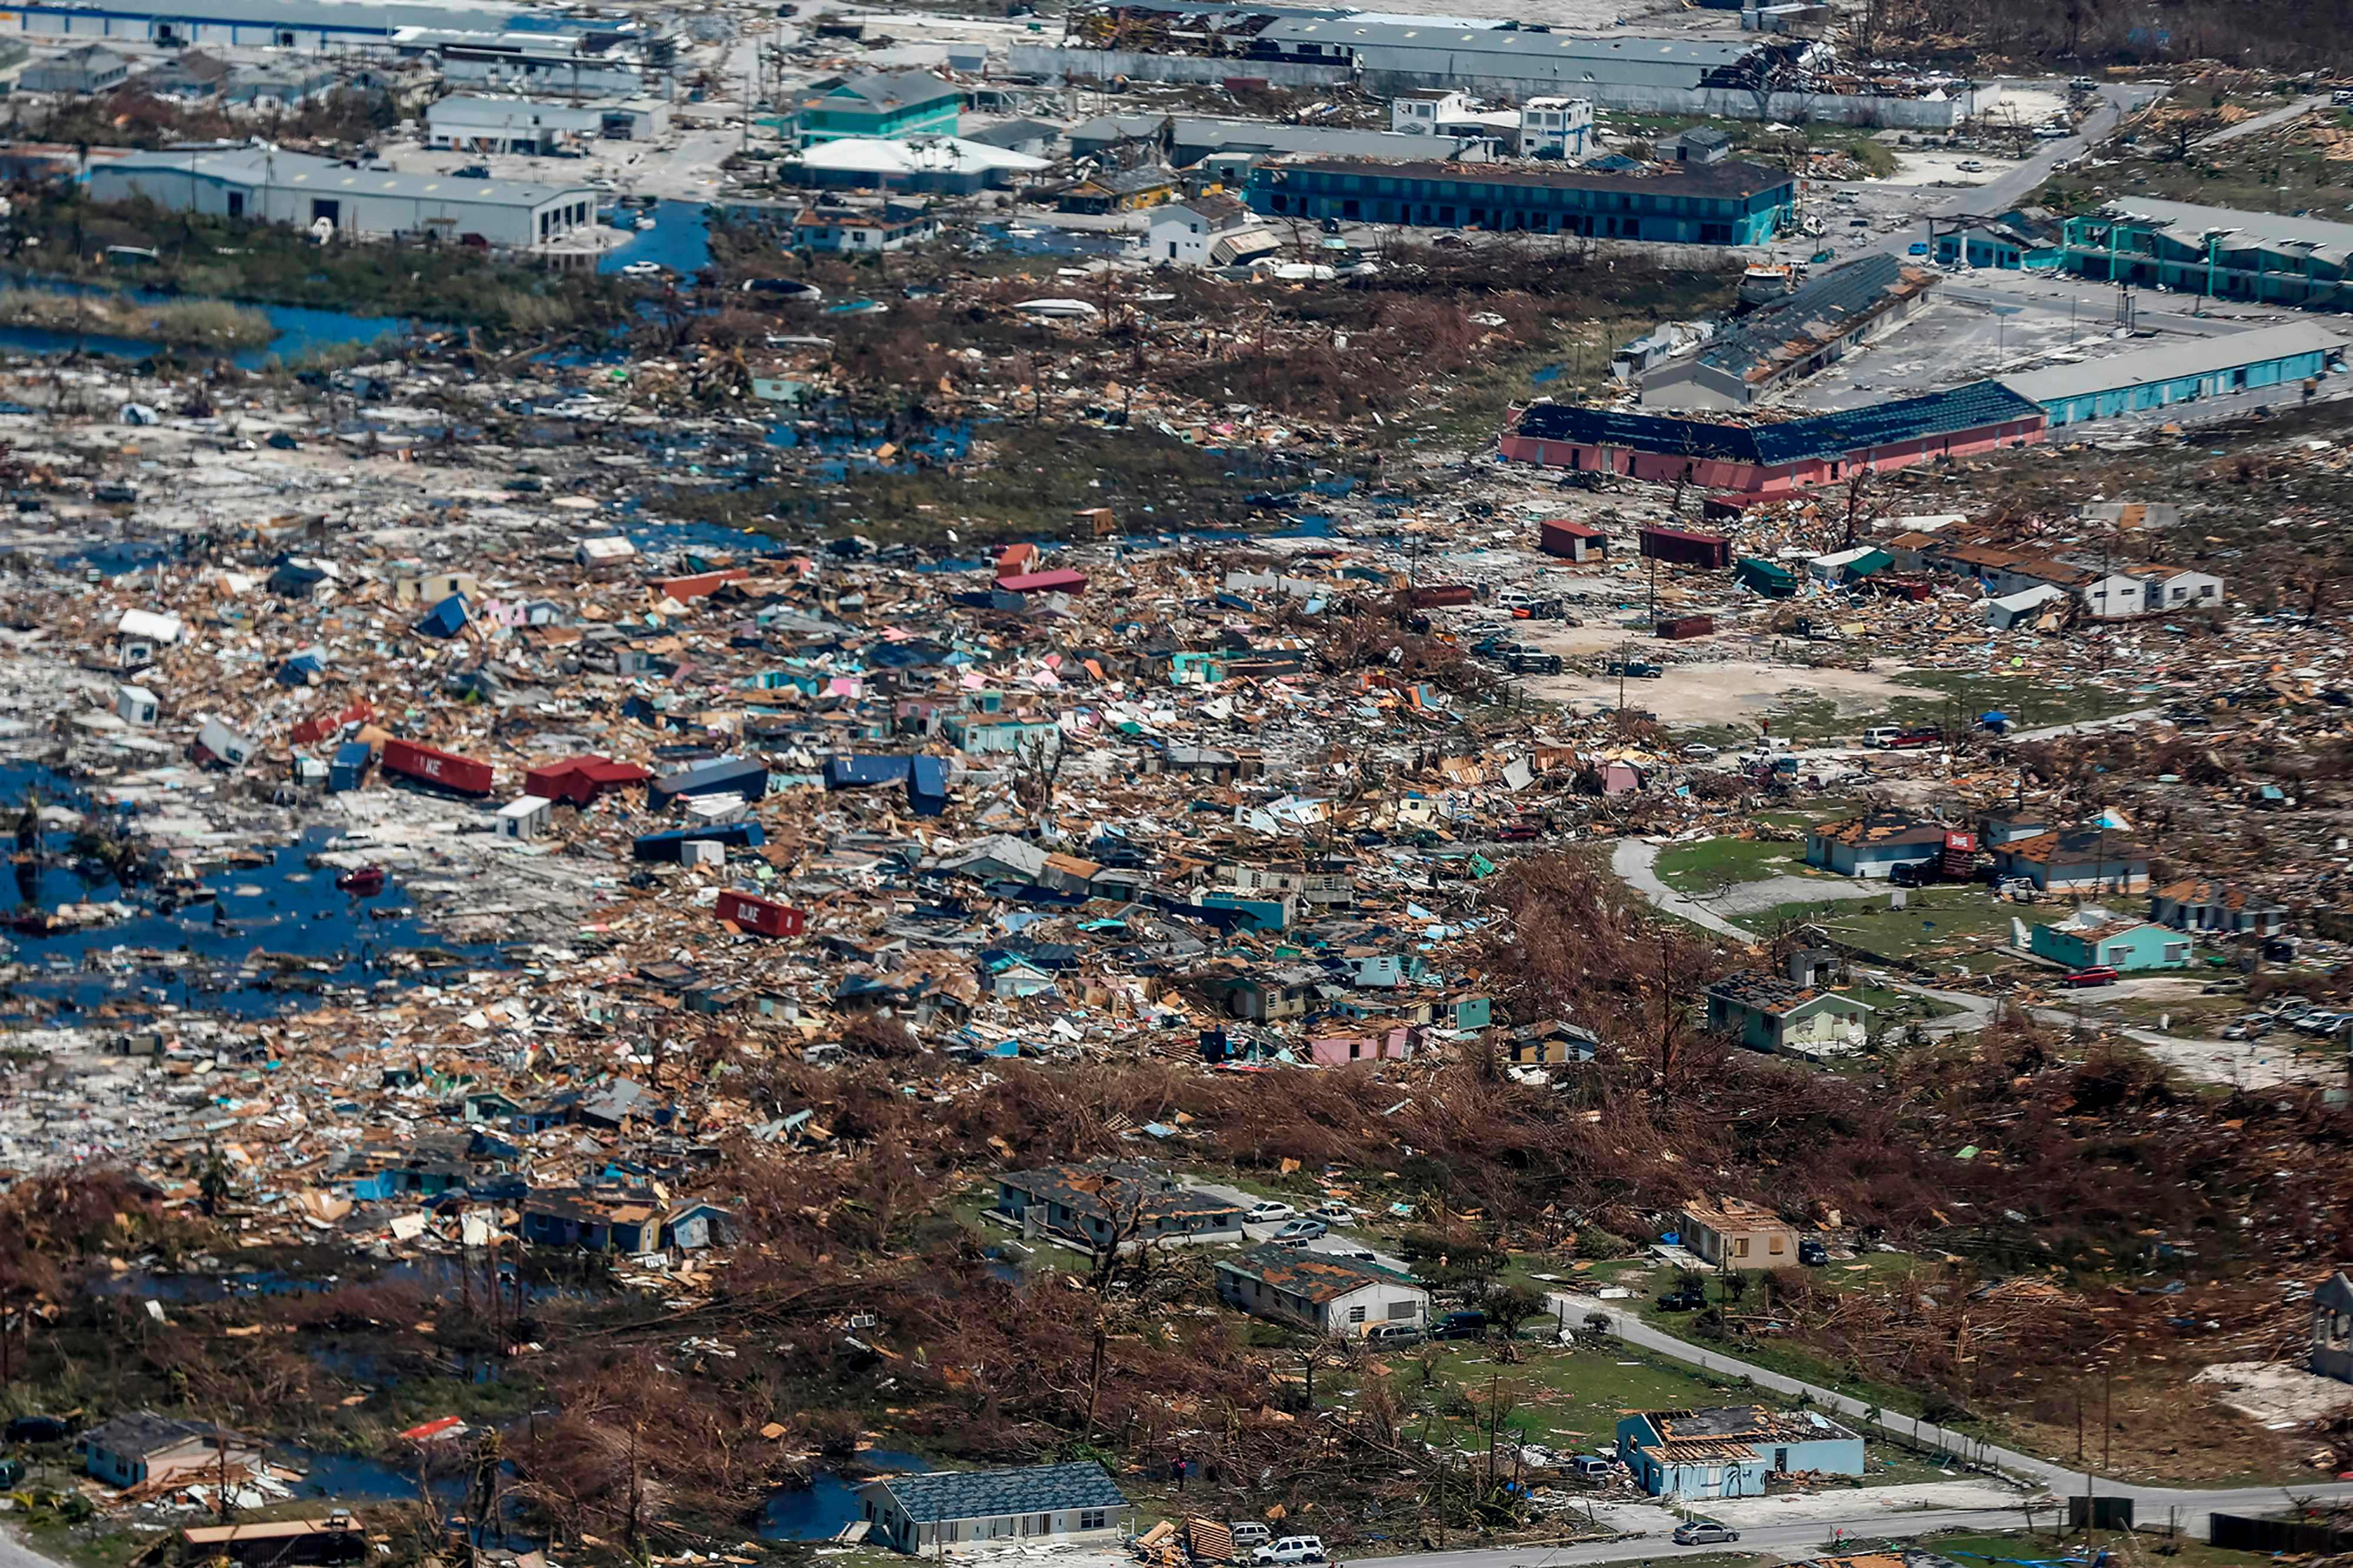 The 225mph megastorm bought near-total devastation to the Abaco Island